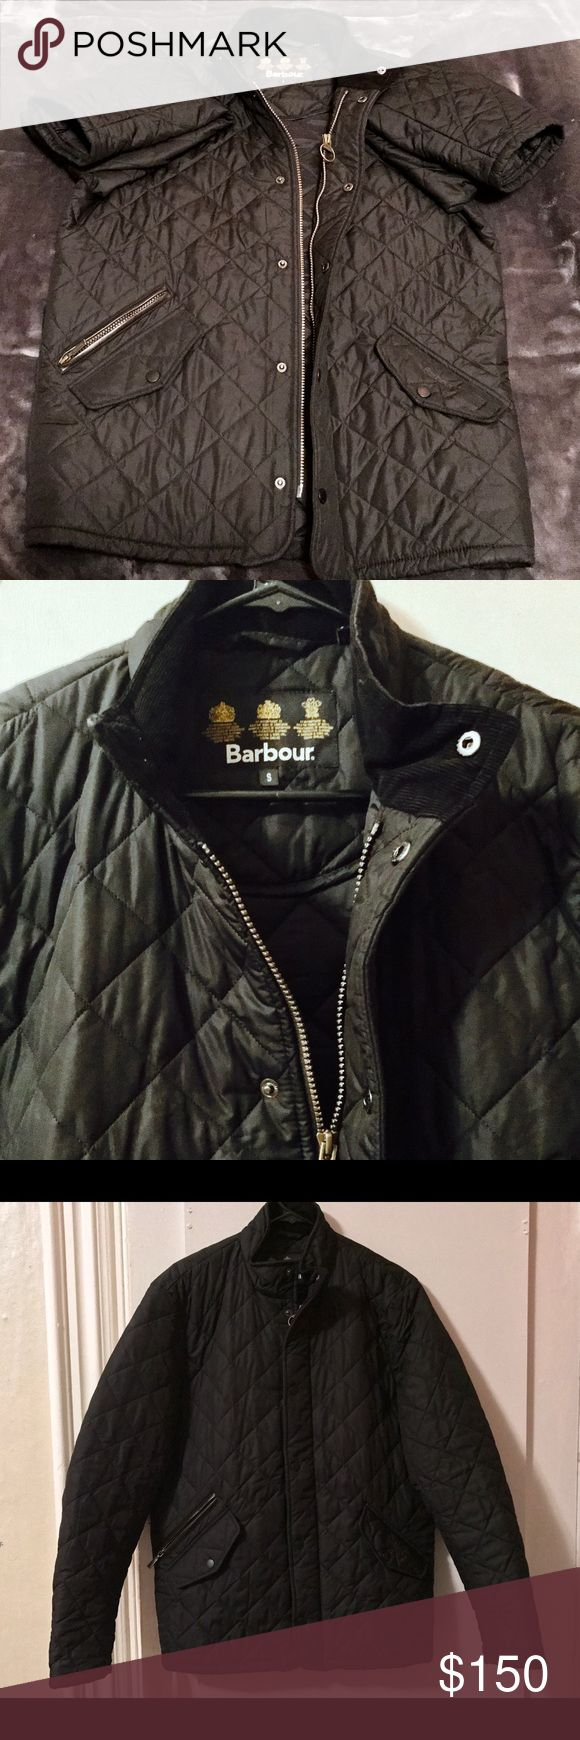 Men's Barbour Jacket - Small Men's Barbour wax jacket - new without tags. All zippers, buttons, pockets are all in perfect condition. Barbour Jackets & Coats Bomber & Varsity